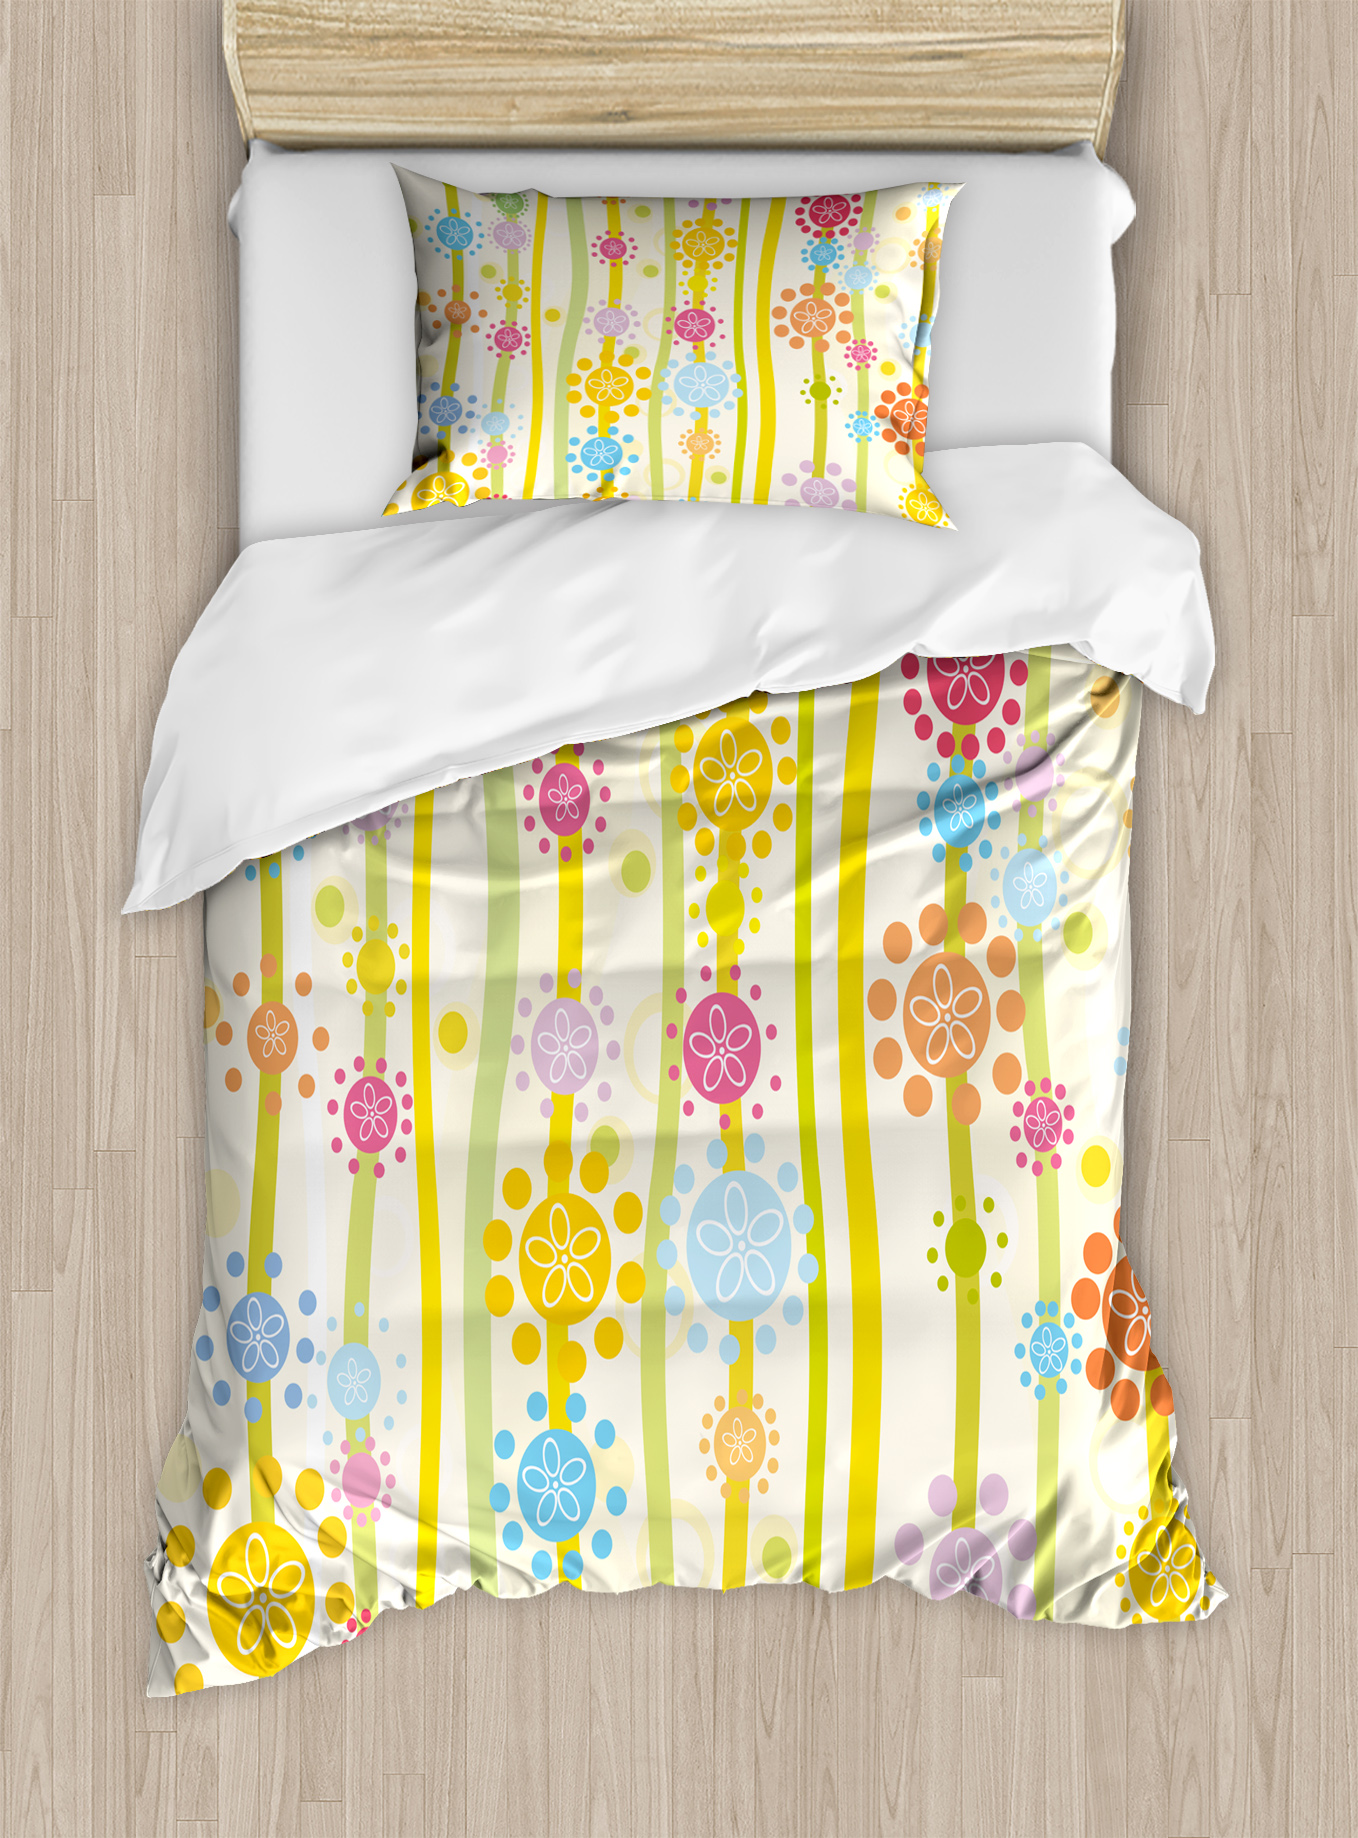 Floral Twin Size Duvet Cover Set, Vertical Lines with Colorful Cartoon Style Flowers and... by Kozmos